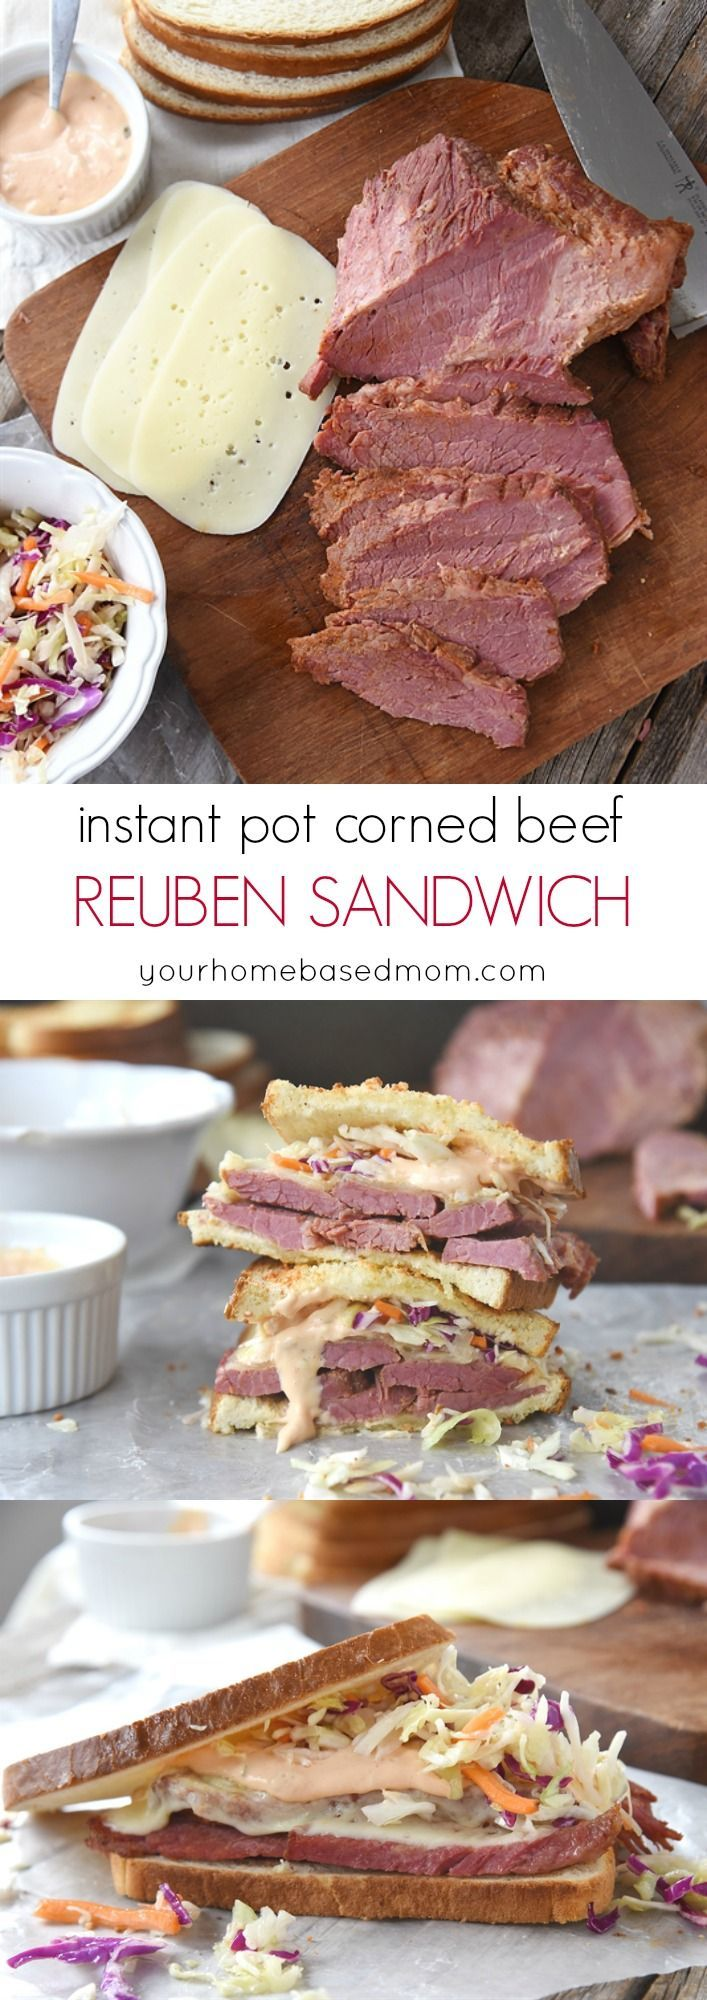 Instant Pot Corned Beef Reuben Sandwiches Recipe - perfect for St. Patrick's Day or any time!